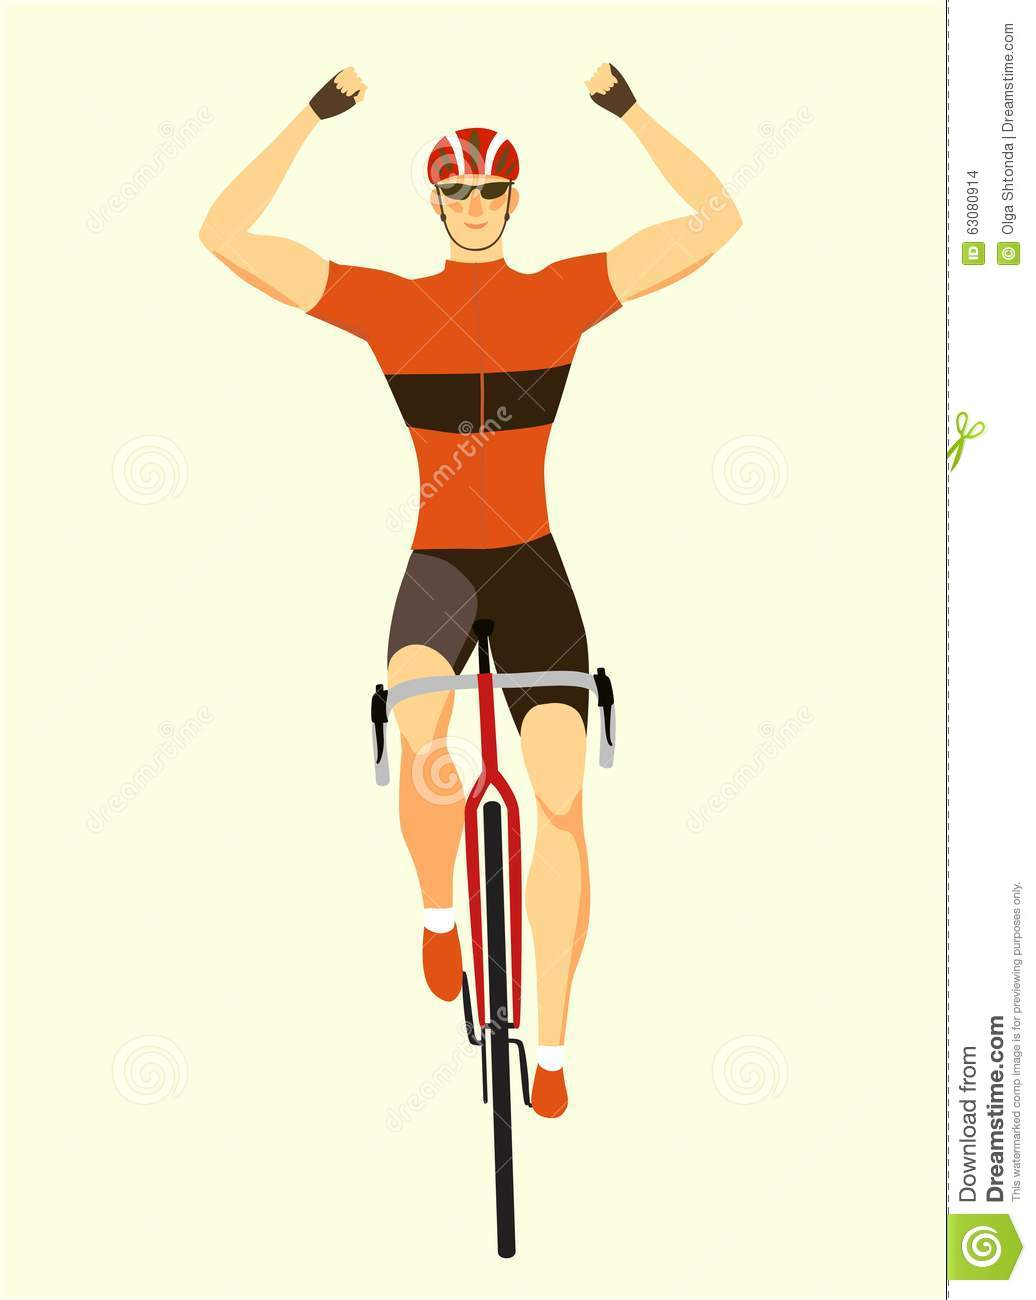 Download Gagnant Emballant Le Cycliste Illustration Stock - Illustration du concurrence, action: 63080914